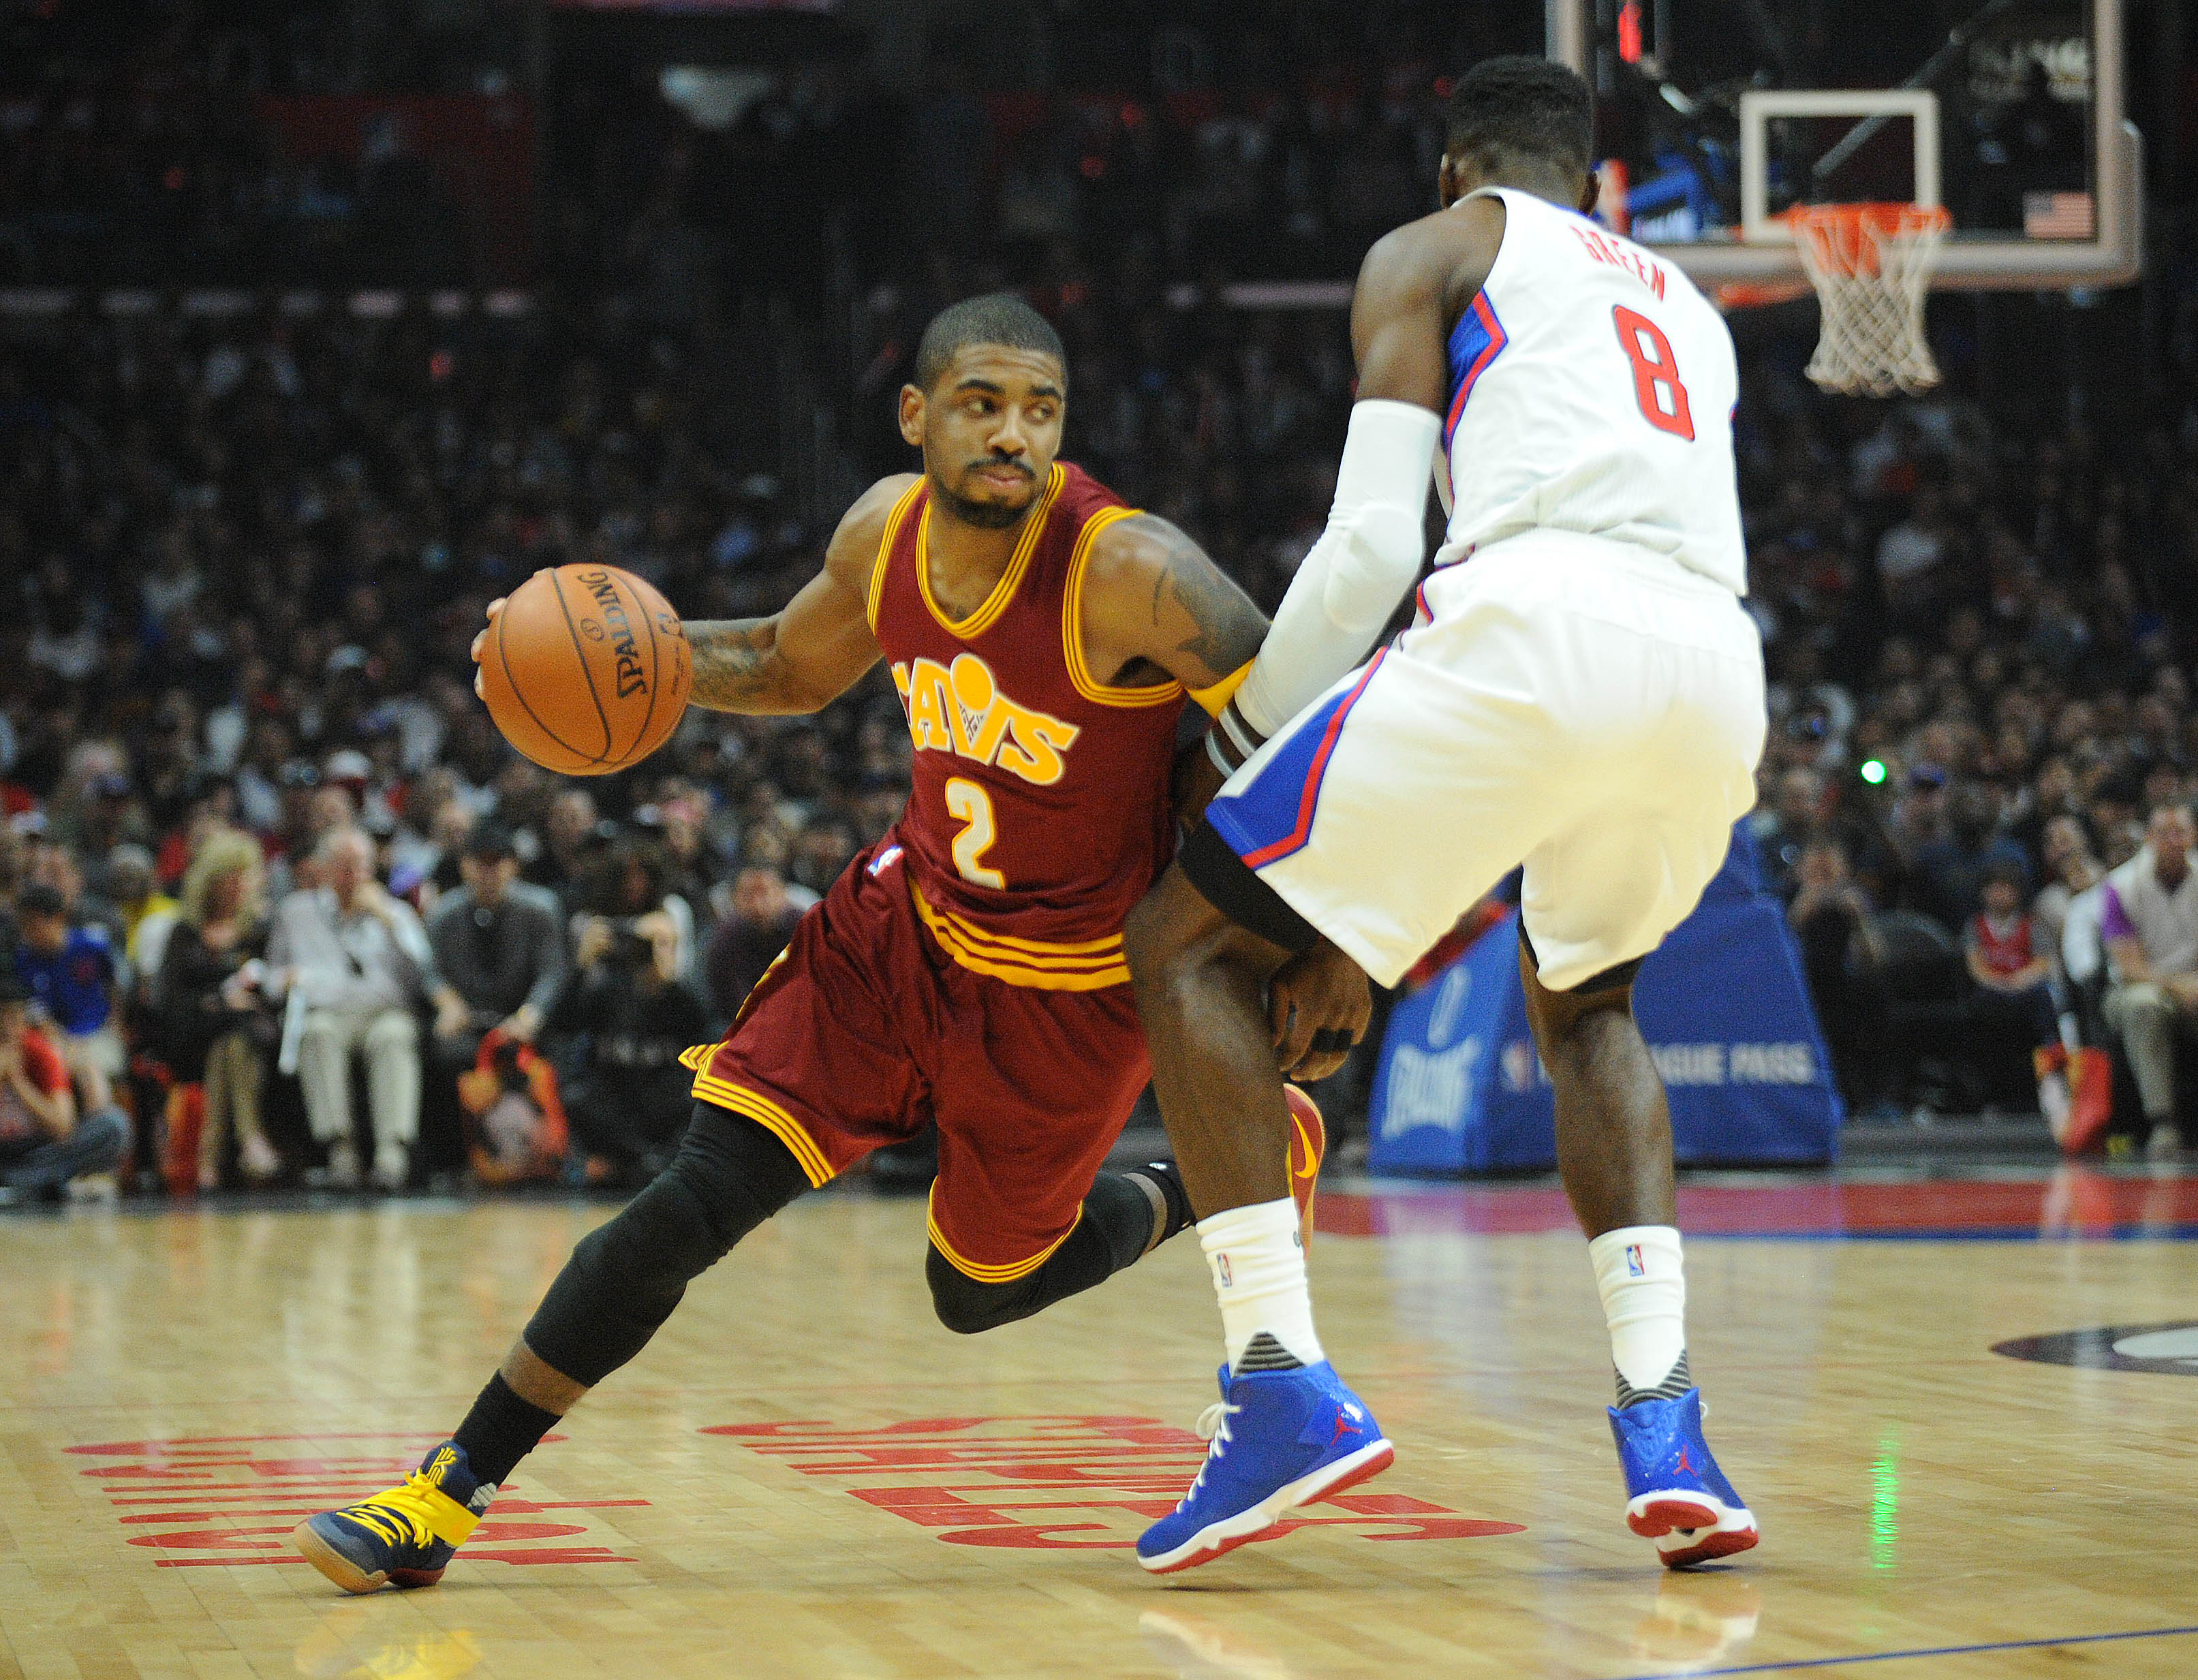 kyrie irving - photo #26